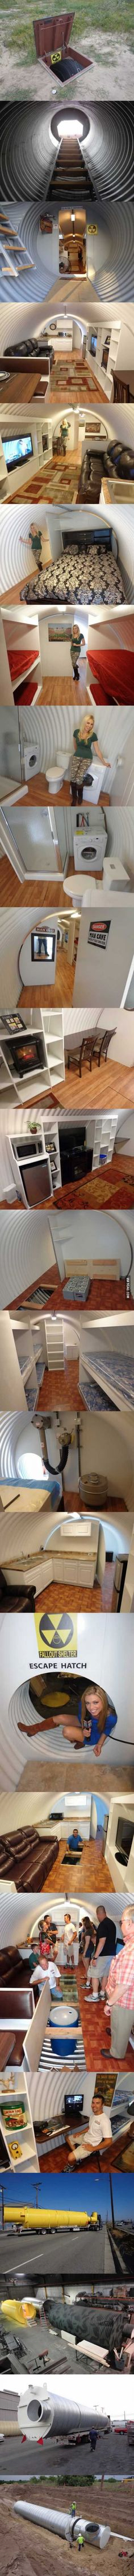 A fall-out shelter that is better than people's houses